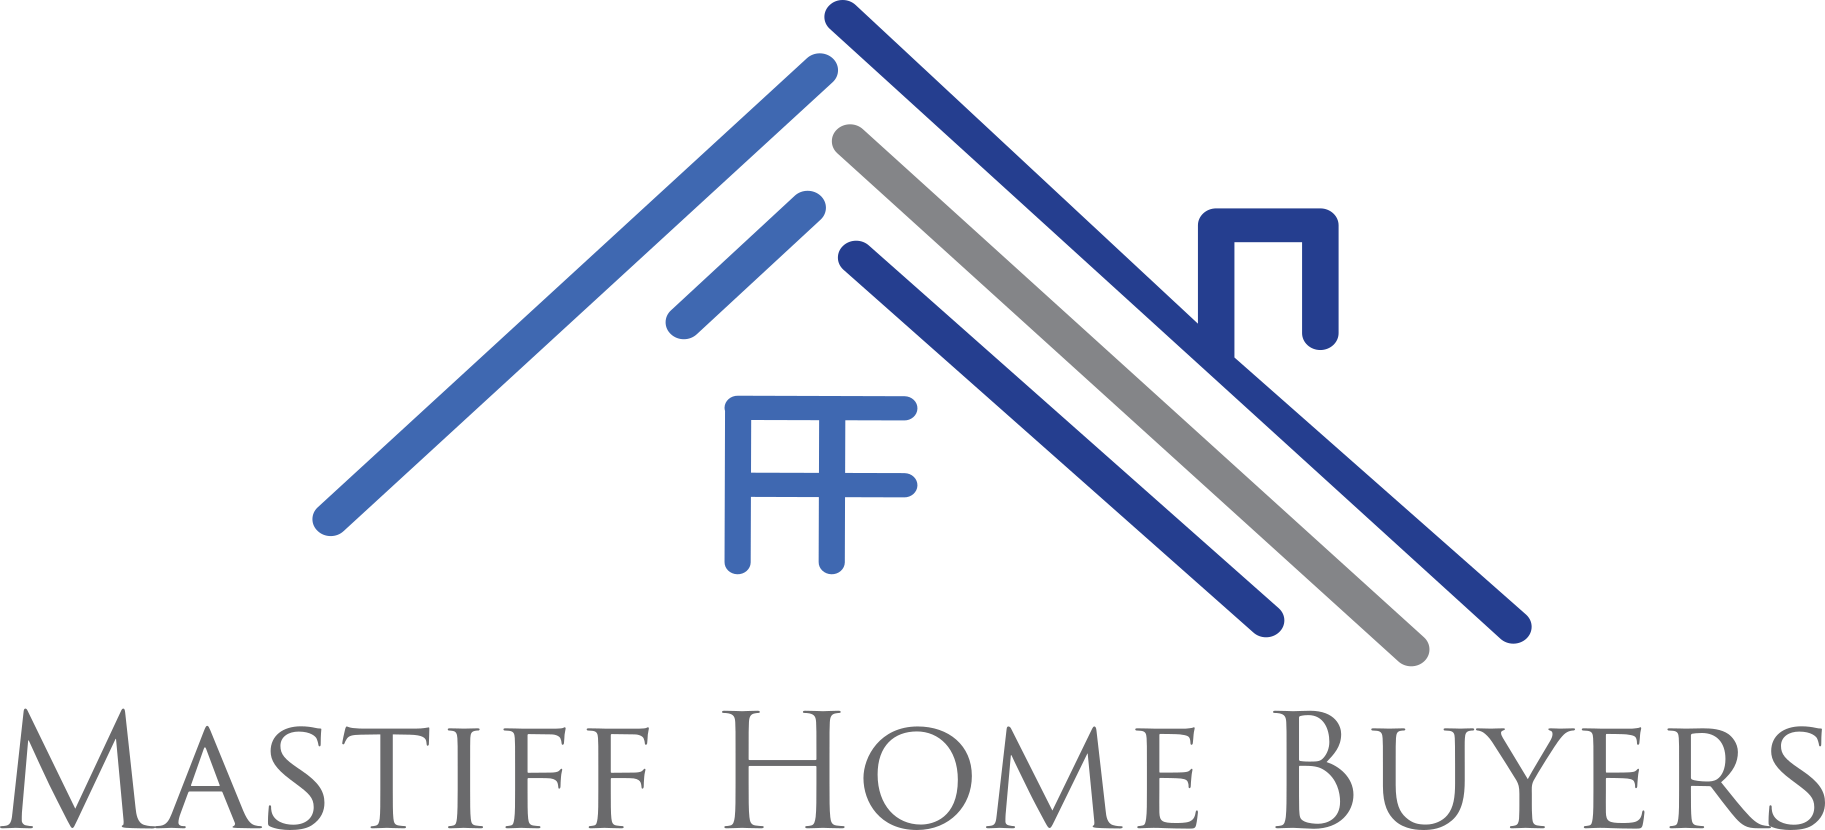 Mastiff Home Buyers and Renovation Corp logo